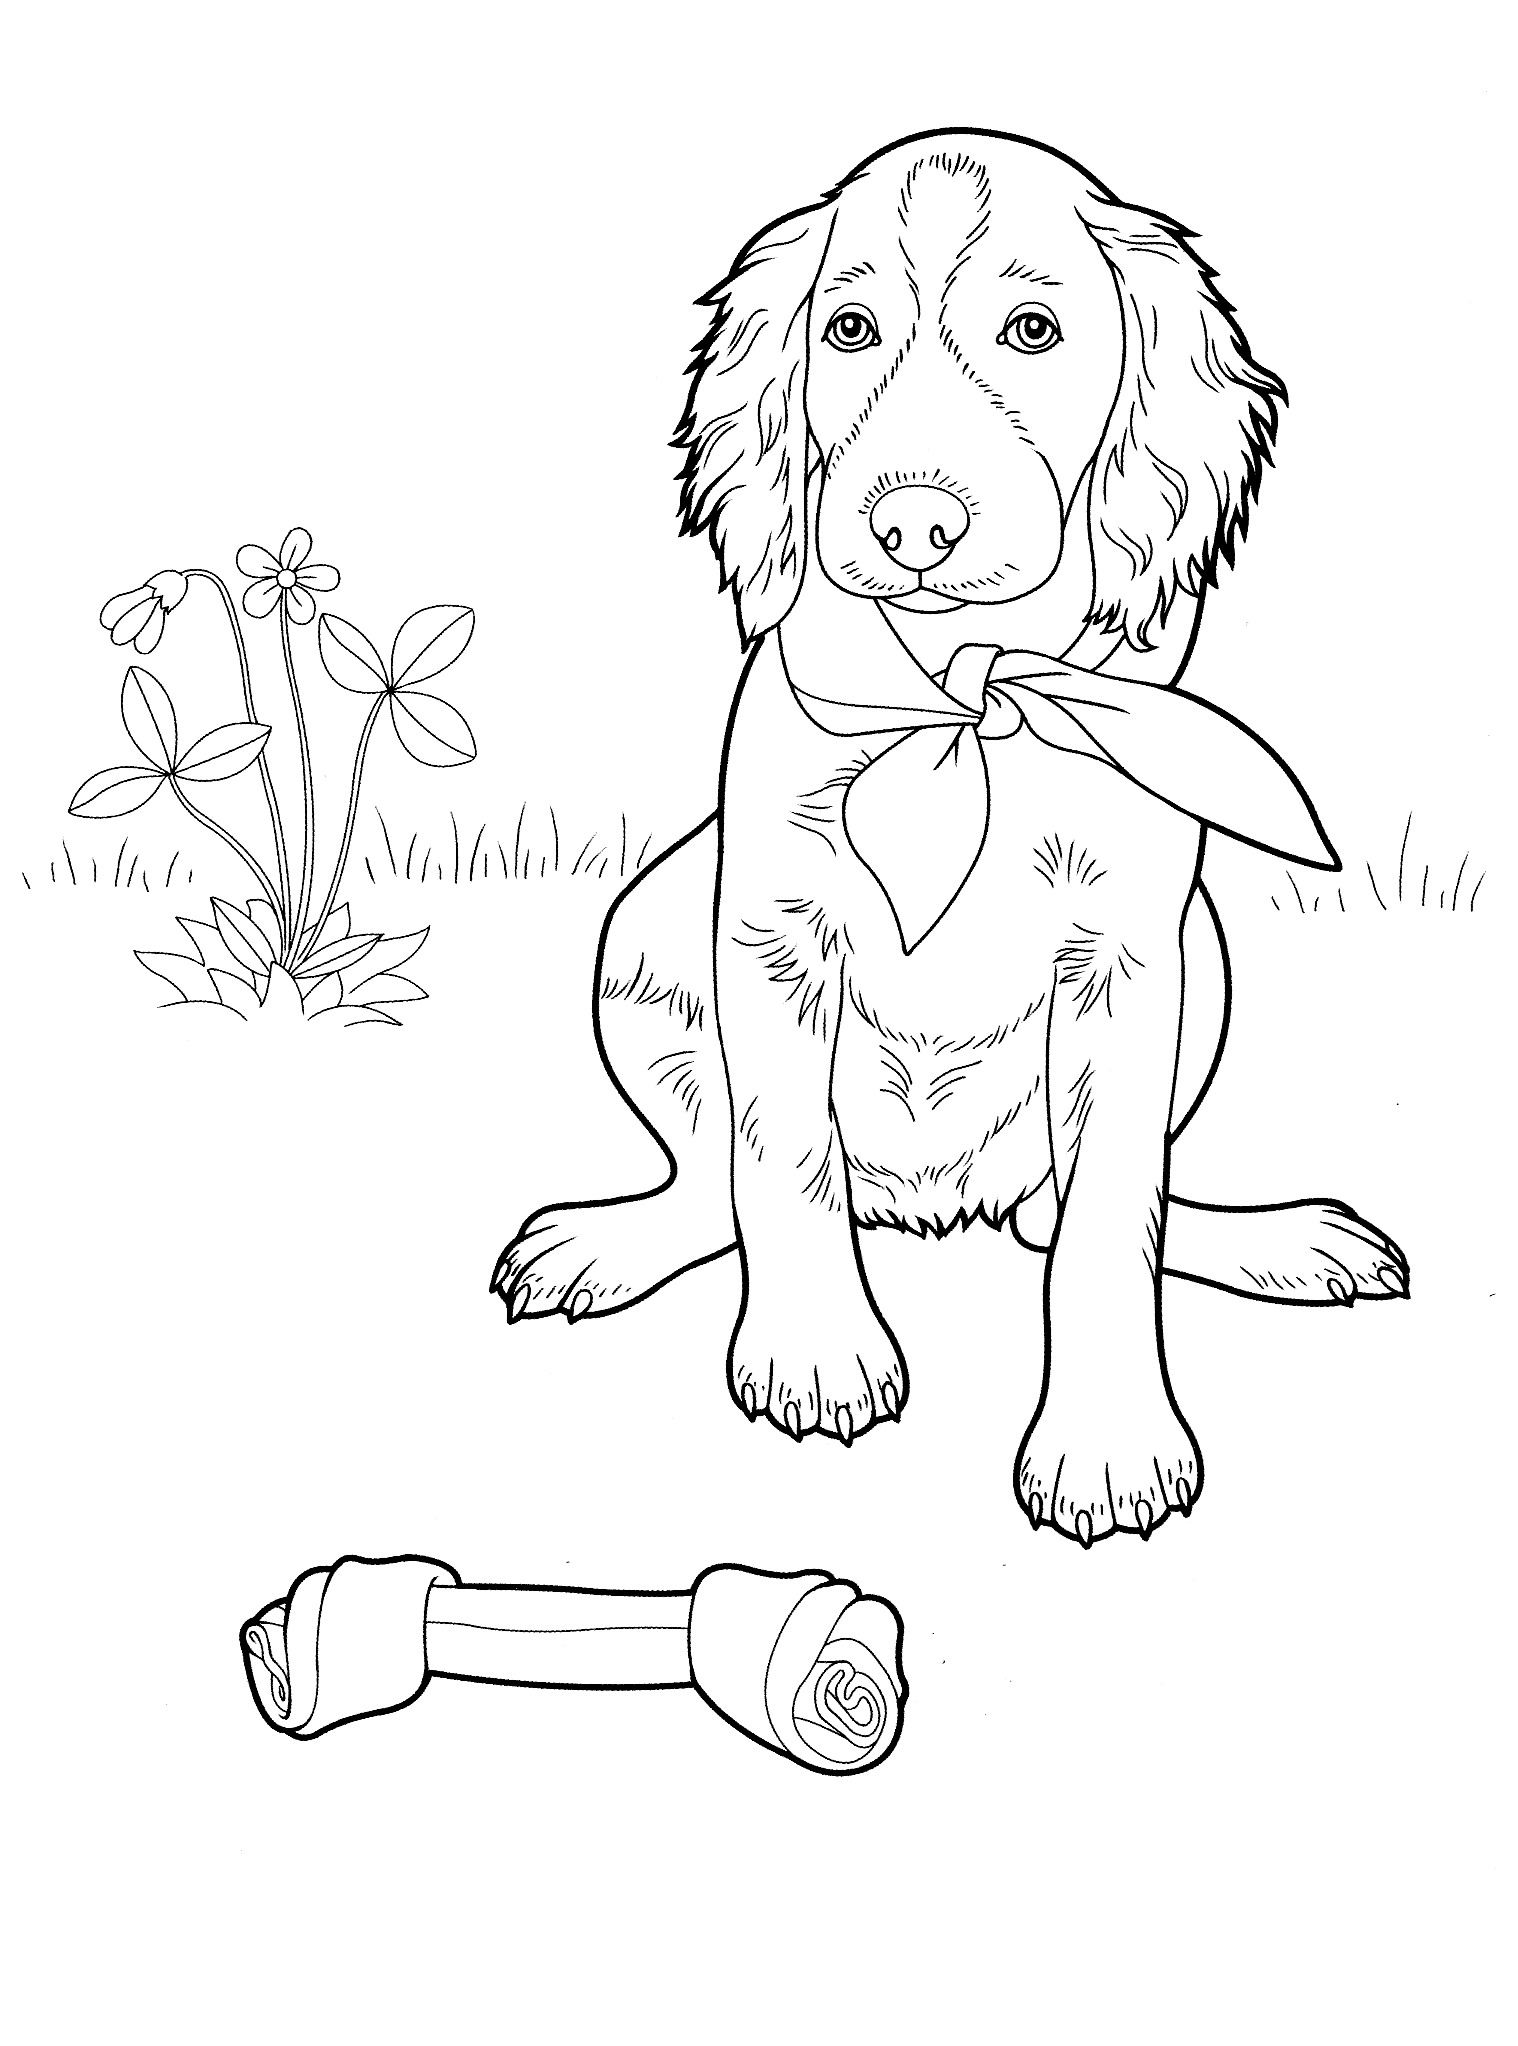 Dog Coloring Pages 17 Teenagers Coloring Pages